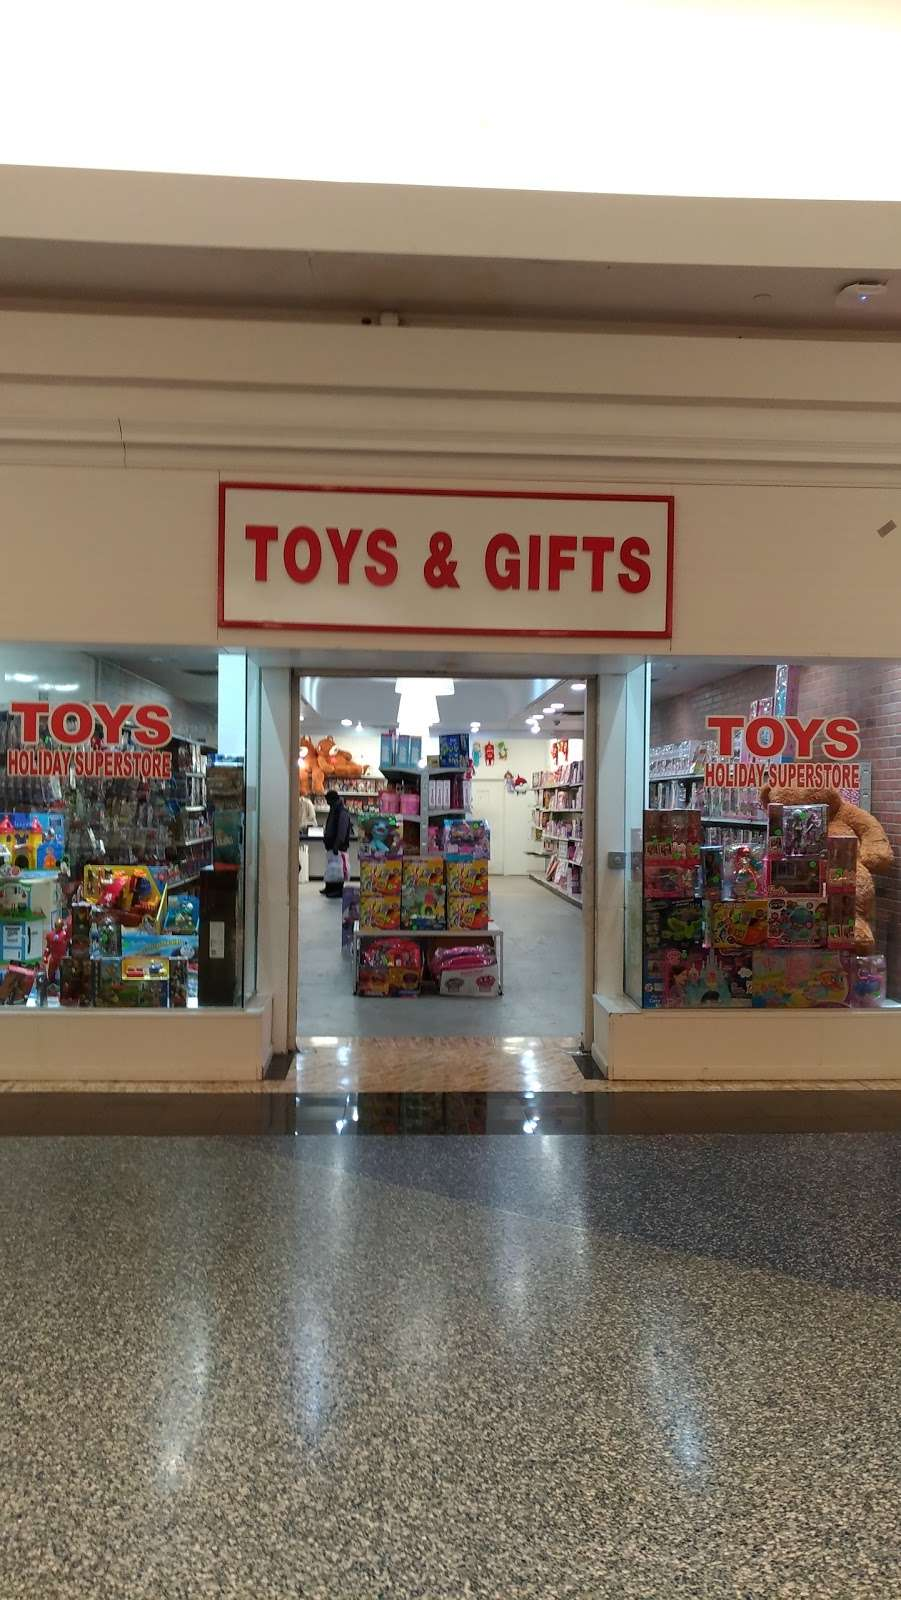 Toys & Gift - store  | Photo 1 of 1 | Address: 1061 West Circle Drive, Valley Stream, NY 11581, USA